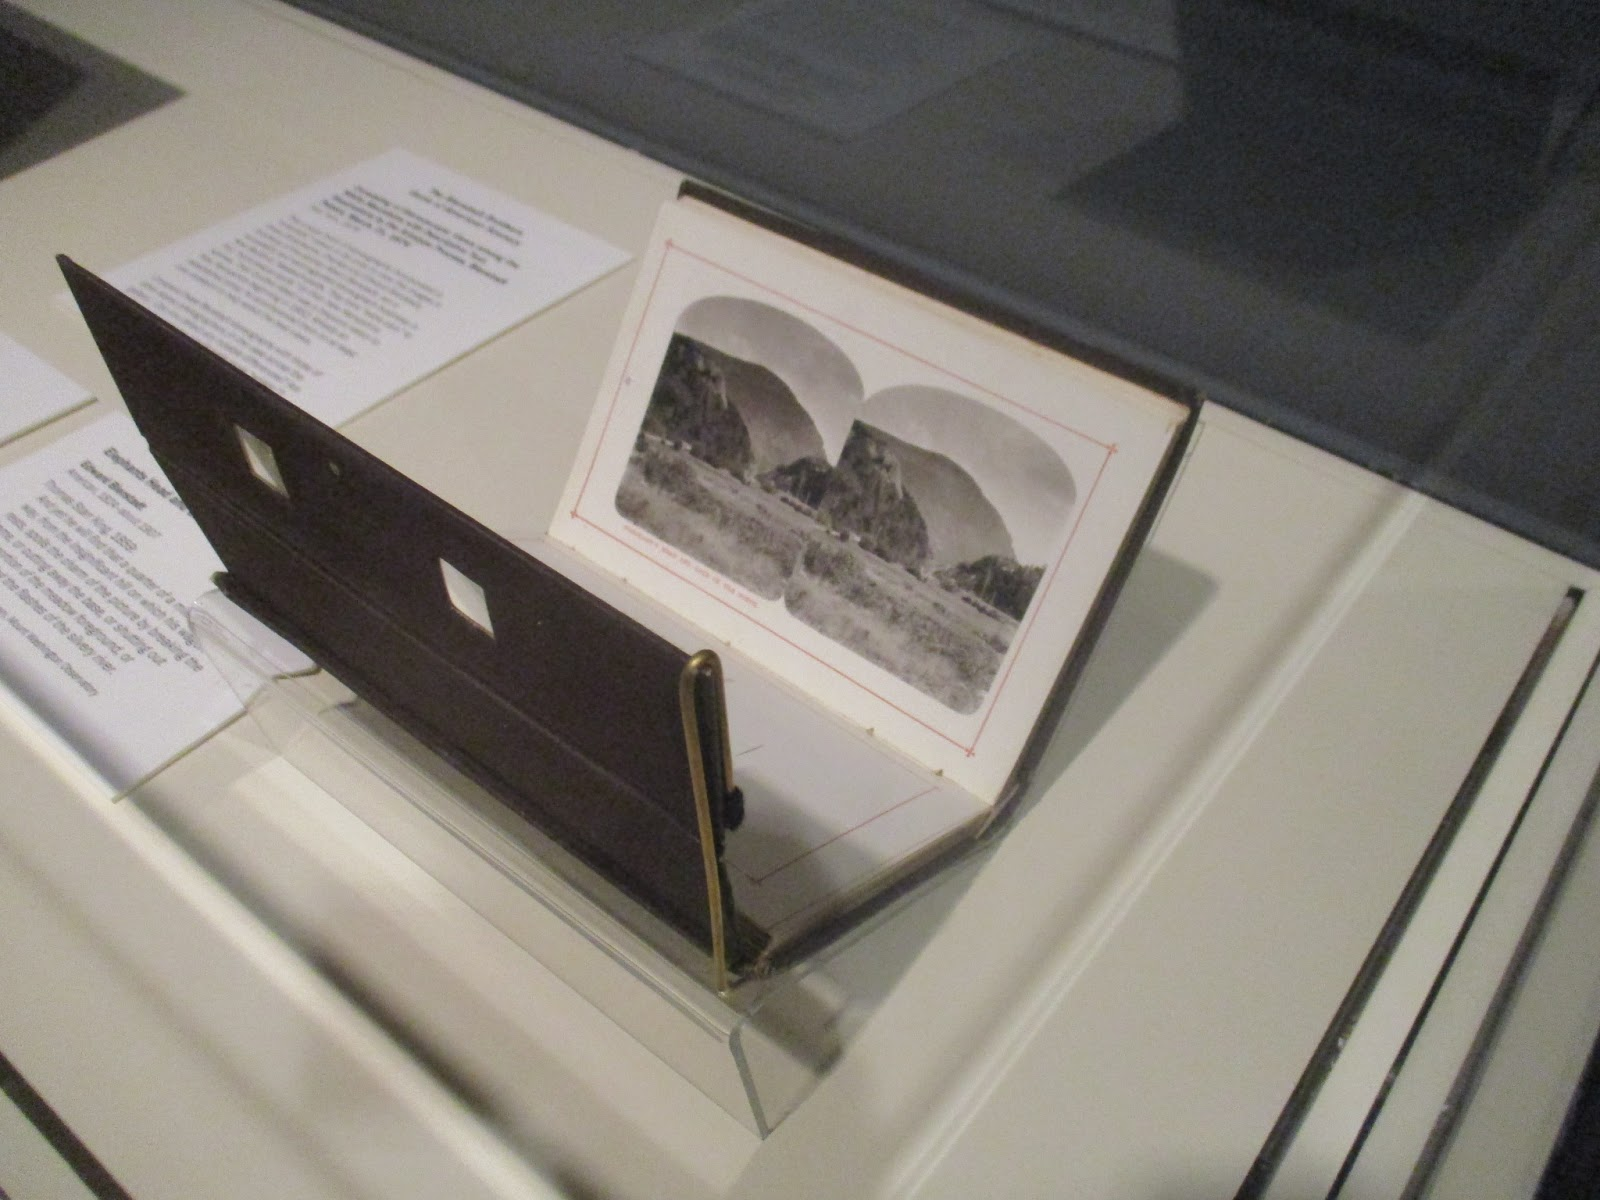 Bierstadt brothers stereoview book